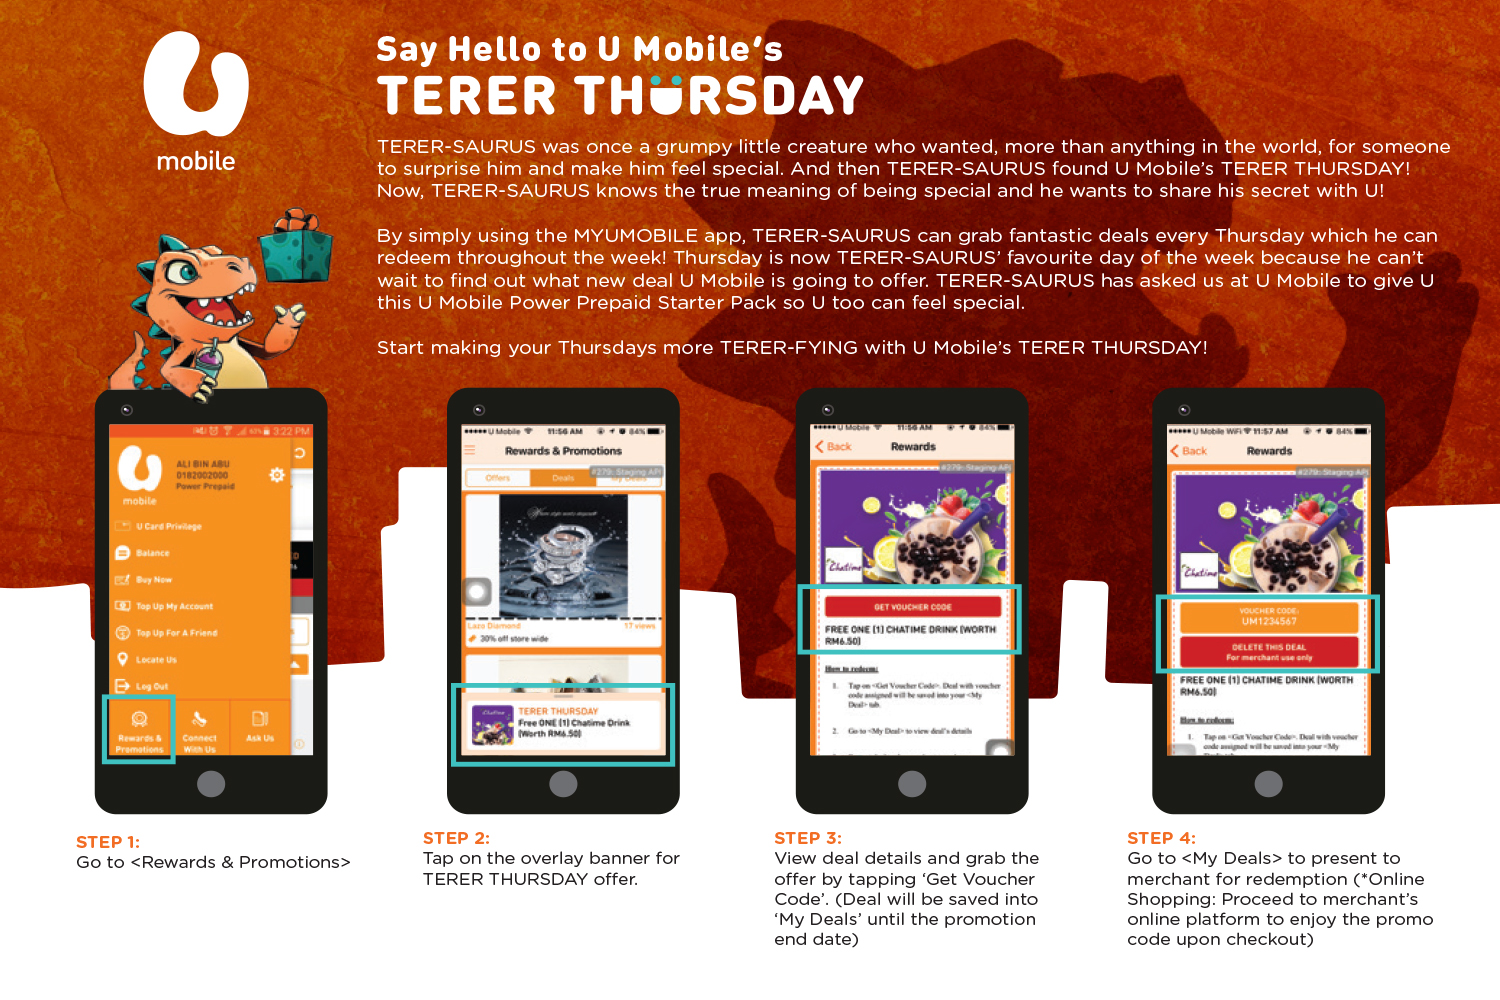 U Mobile TERER THURSDAY